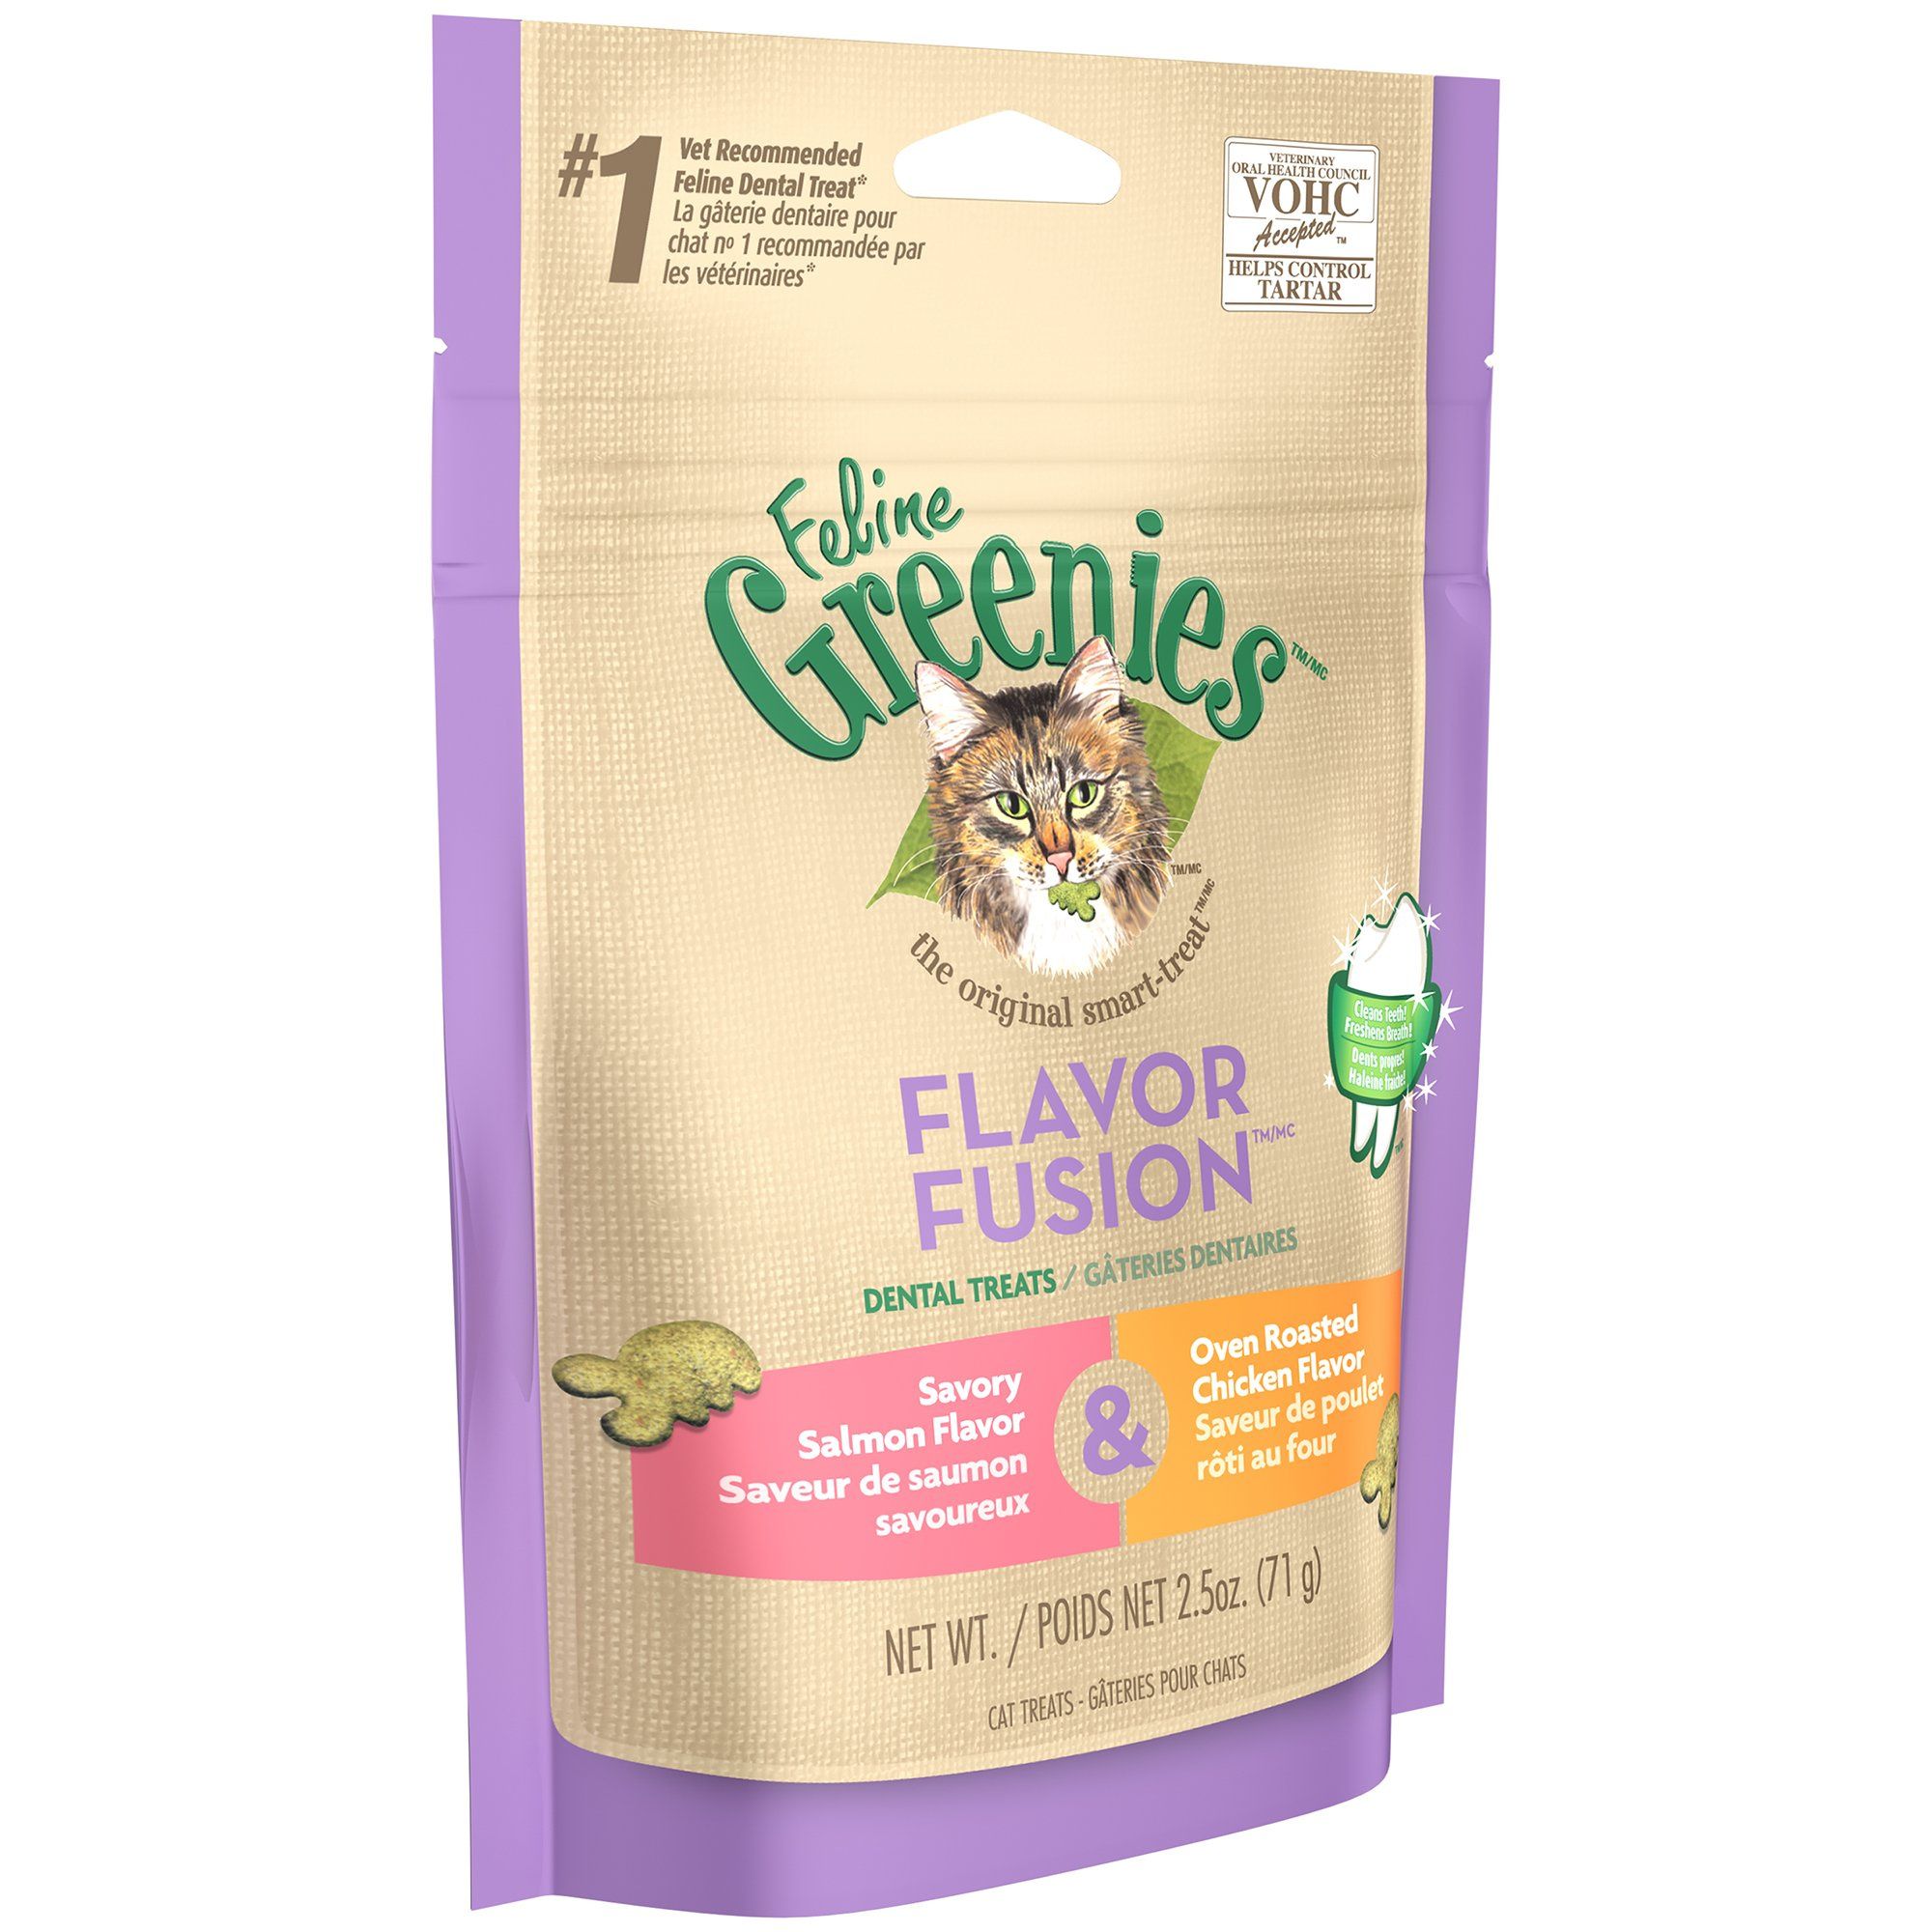 FELINE GREENIES FLAVOR FUSION Dental Treats for Cats Savory Salmon and Oven Roasted Chicken Flavors 2.5 oz.